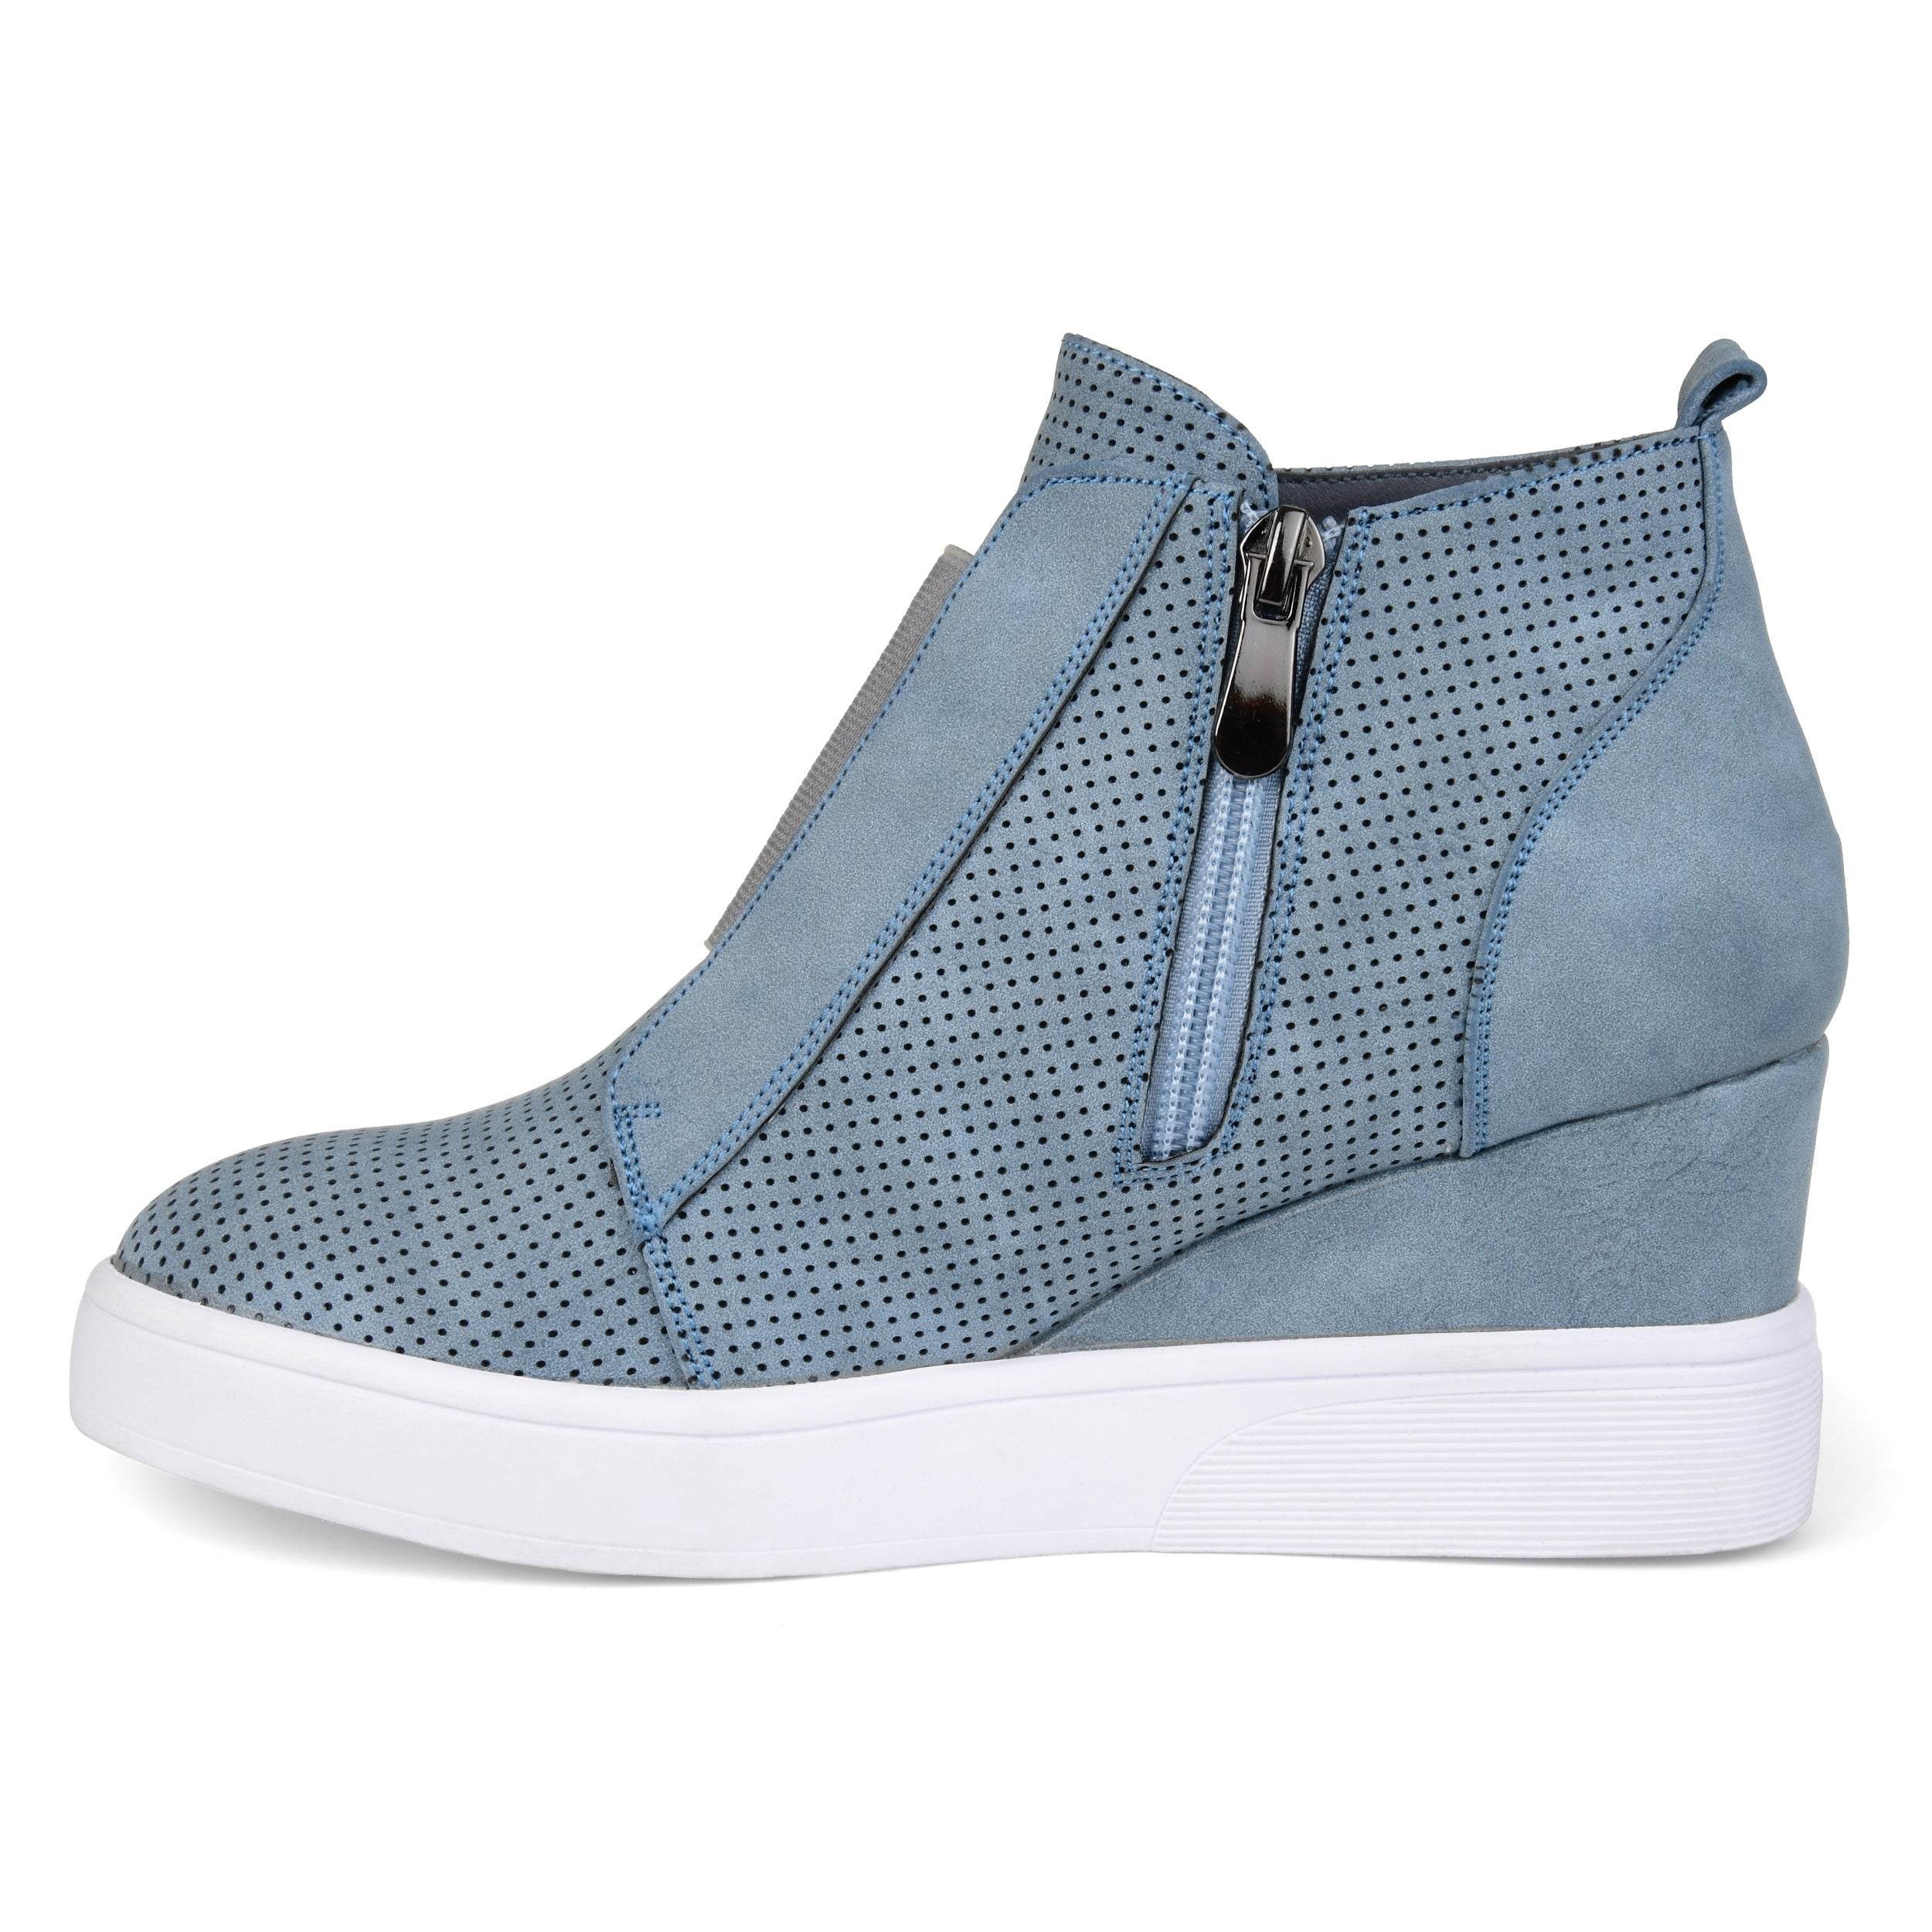 28e4f7bb37 Shop Journee Collection Women's 'Clara' Athleisure Laser-cut Sneaker Wedges  - Free Shipping Today - Overstock - 20874053